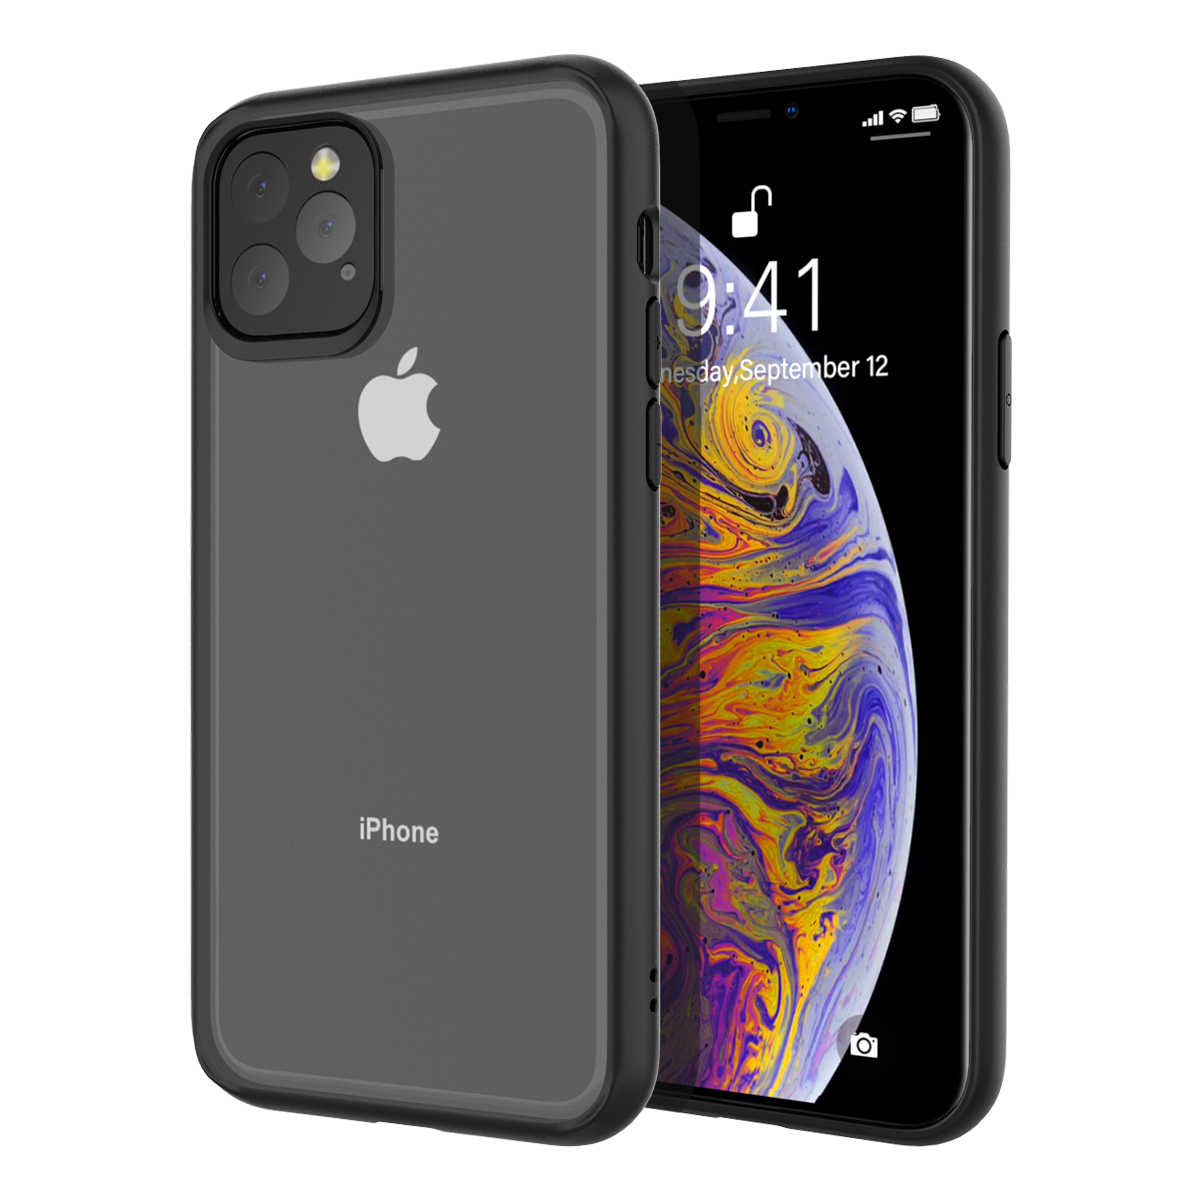 Voor Iphone 11 11 Pro Max X Xs Xs Max Xr Case Clear Hybrid Tpu + Pc Transparant Shockproof Cover voor Iphone 7 8 7 Plus 8 Plus Case